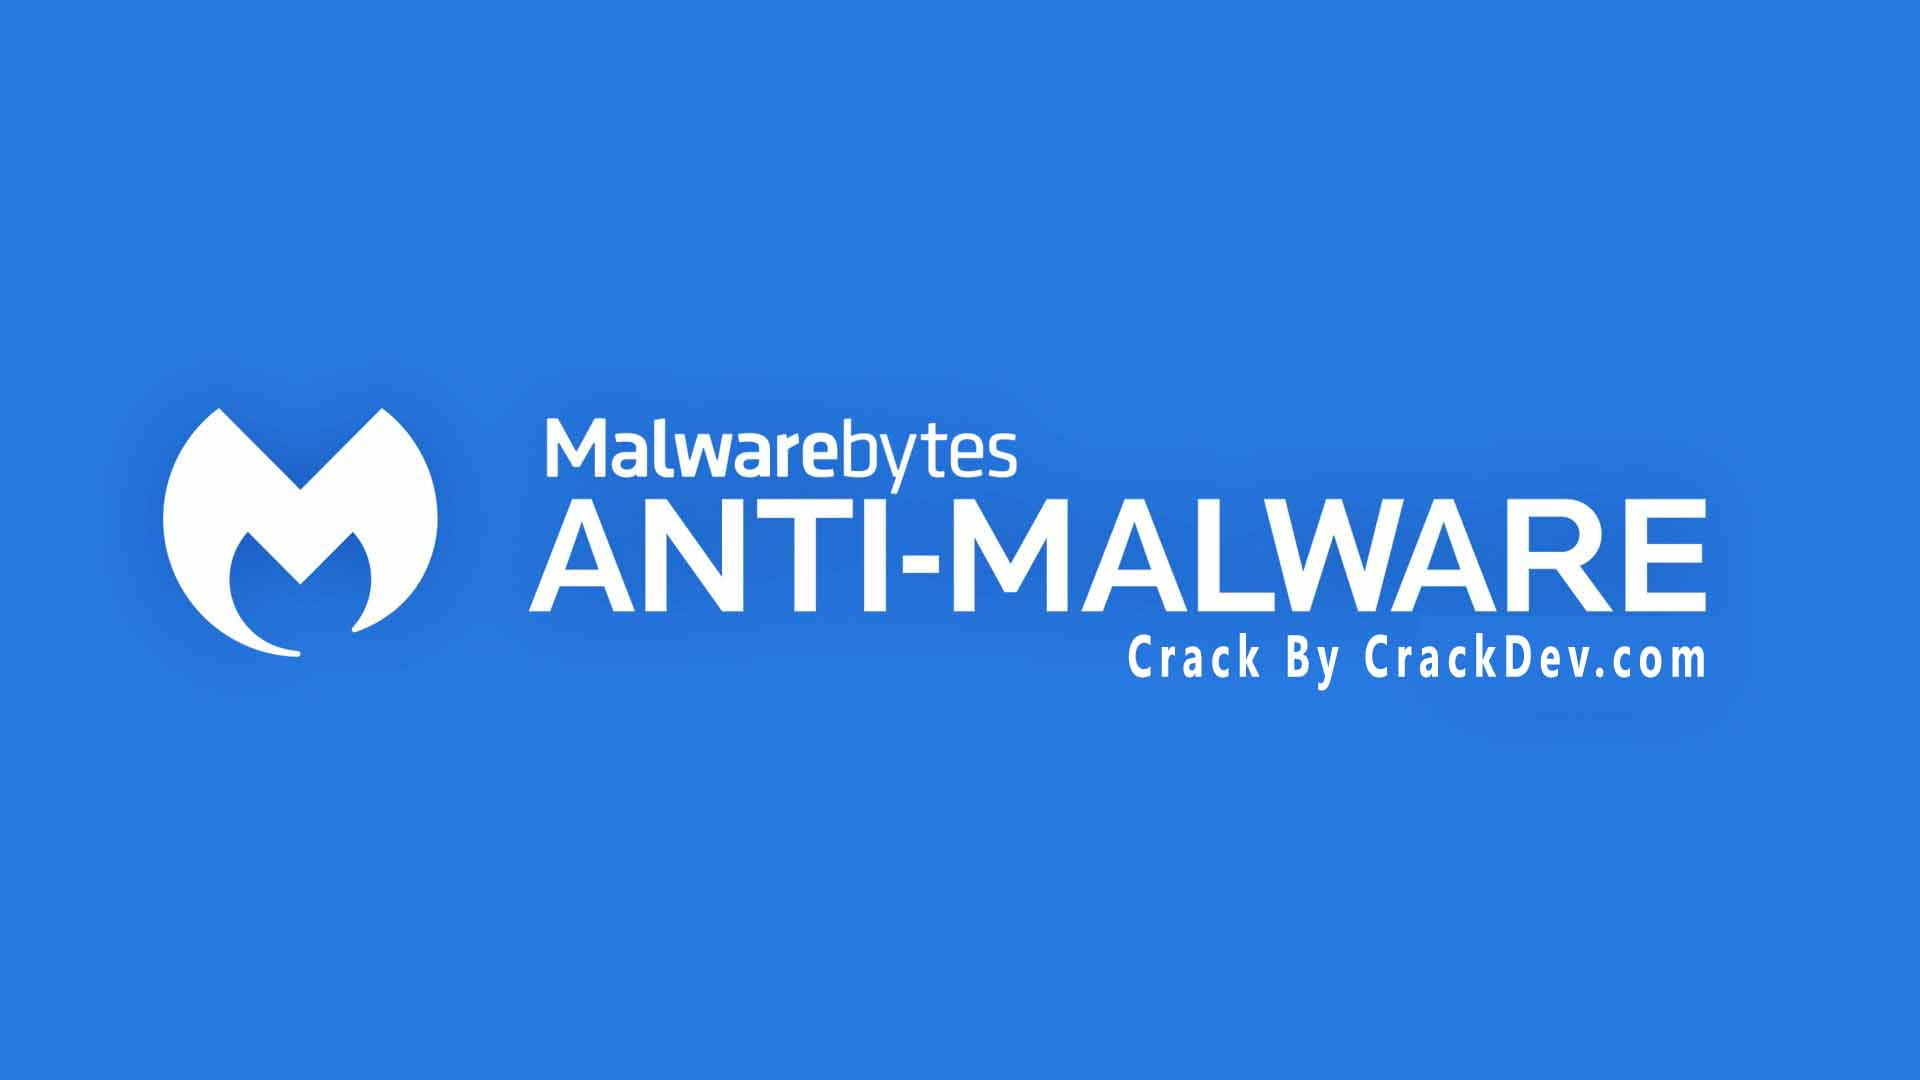 malwarebytes antimalware crack